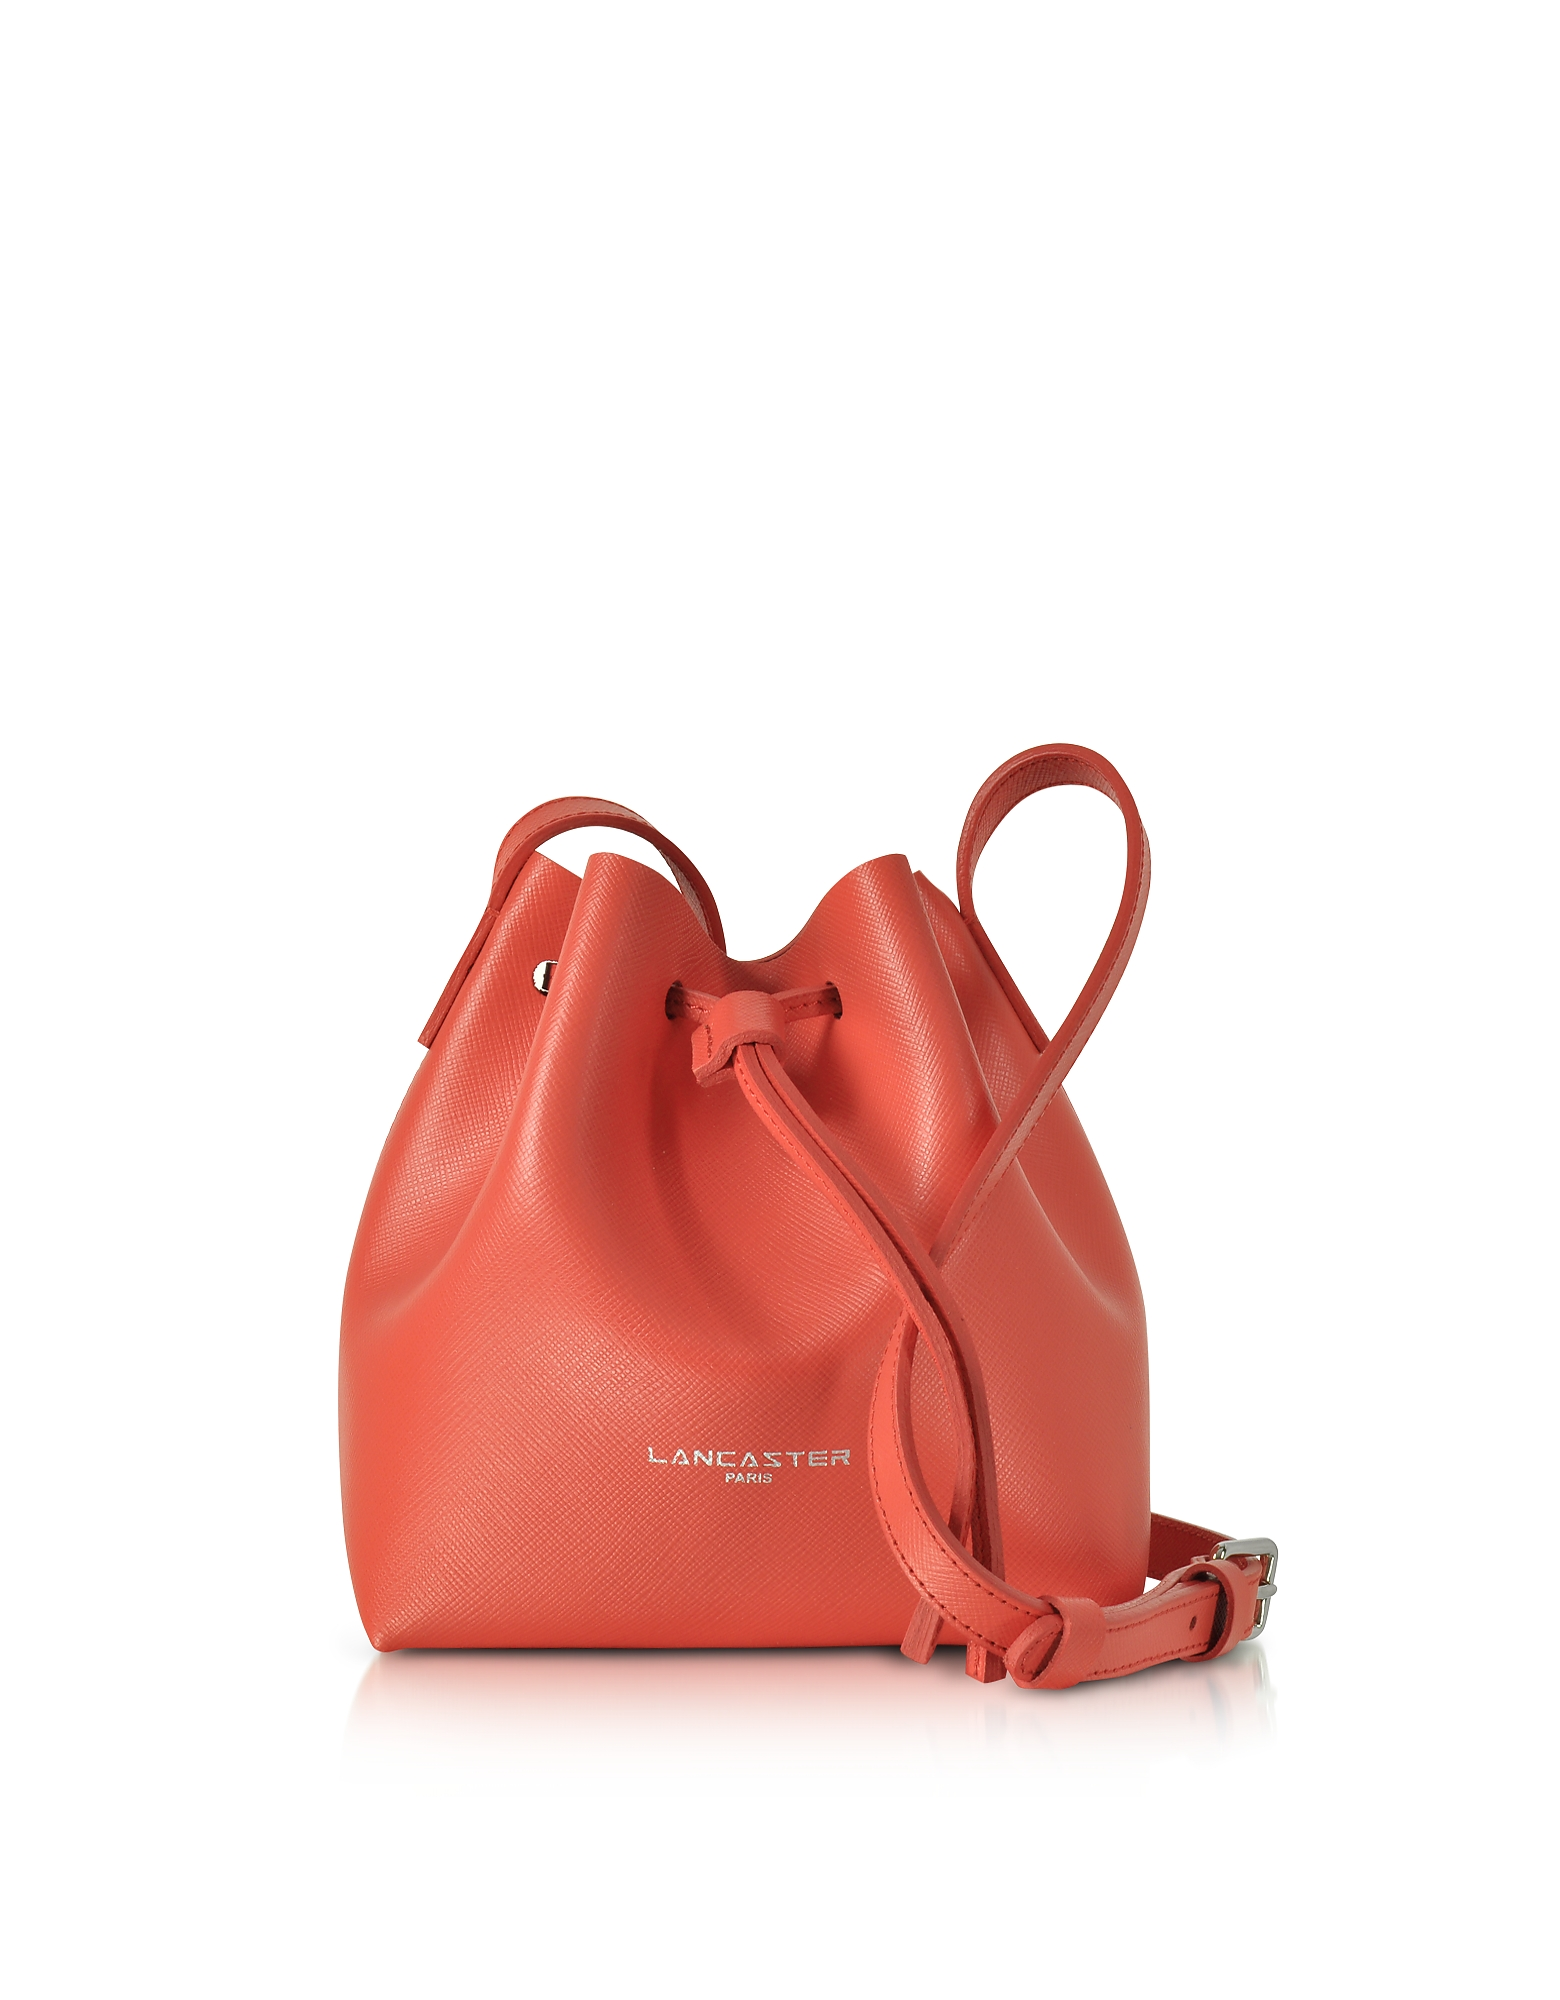 Lancaster Paris Handbags, Pur Saffiano Leather Mini Bucket Bag